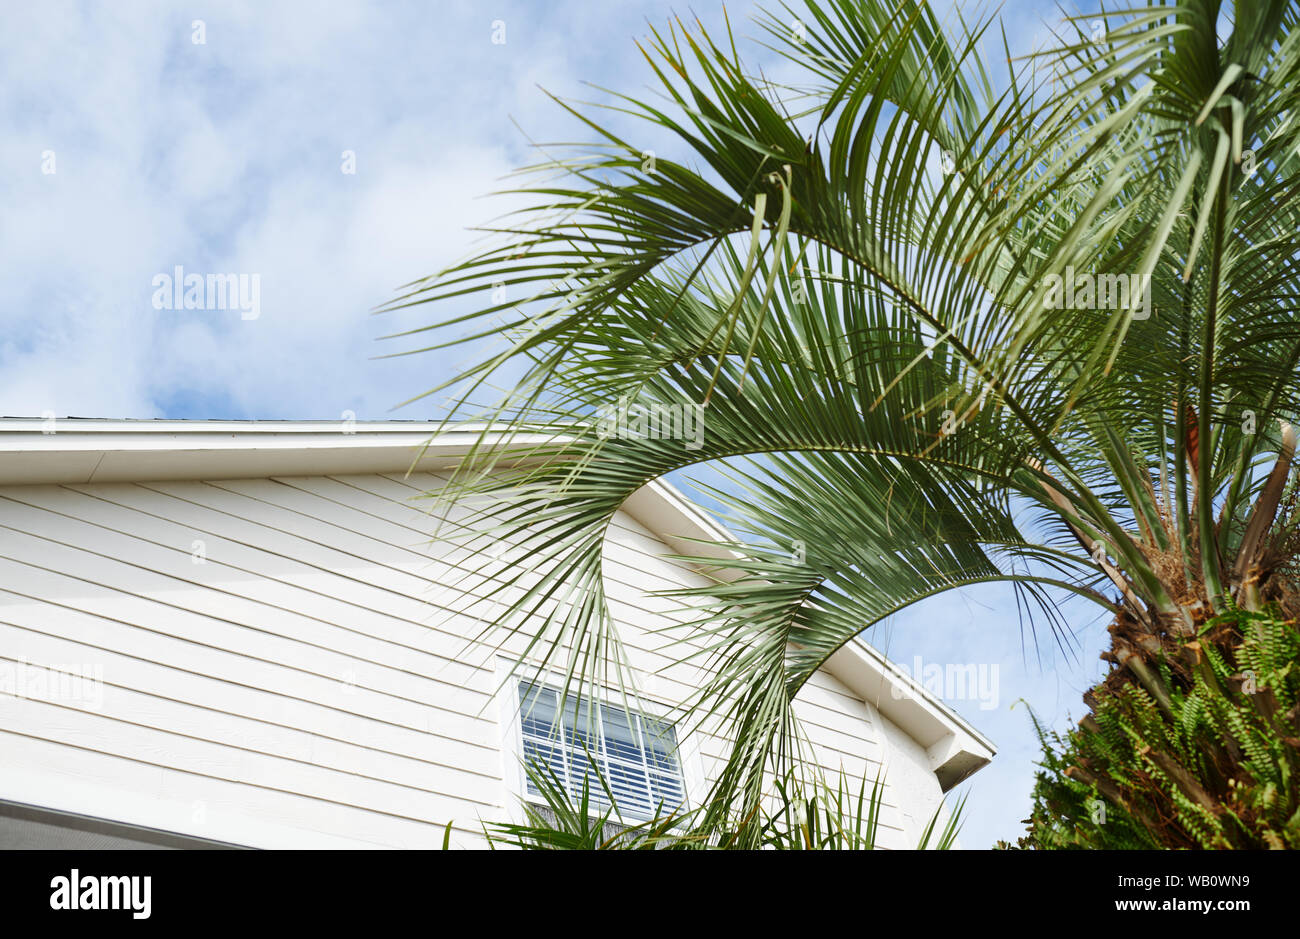 Residential building and palm tree at the backyard Stock Photo